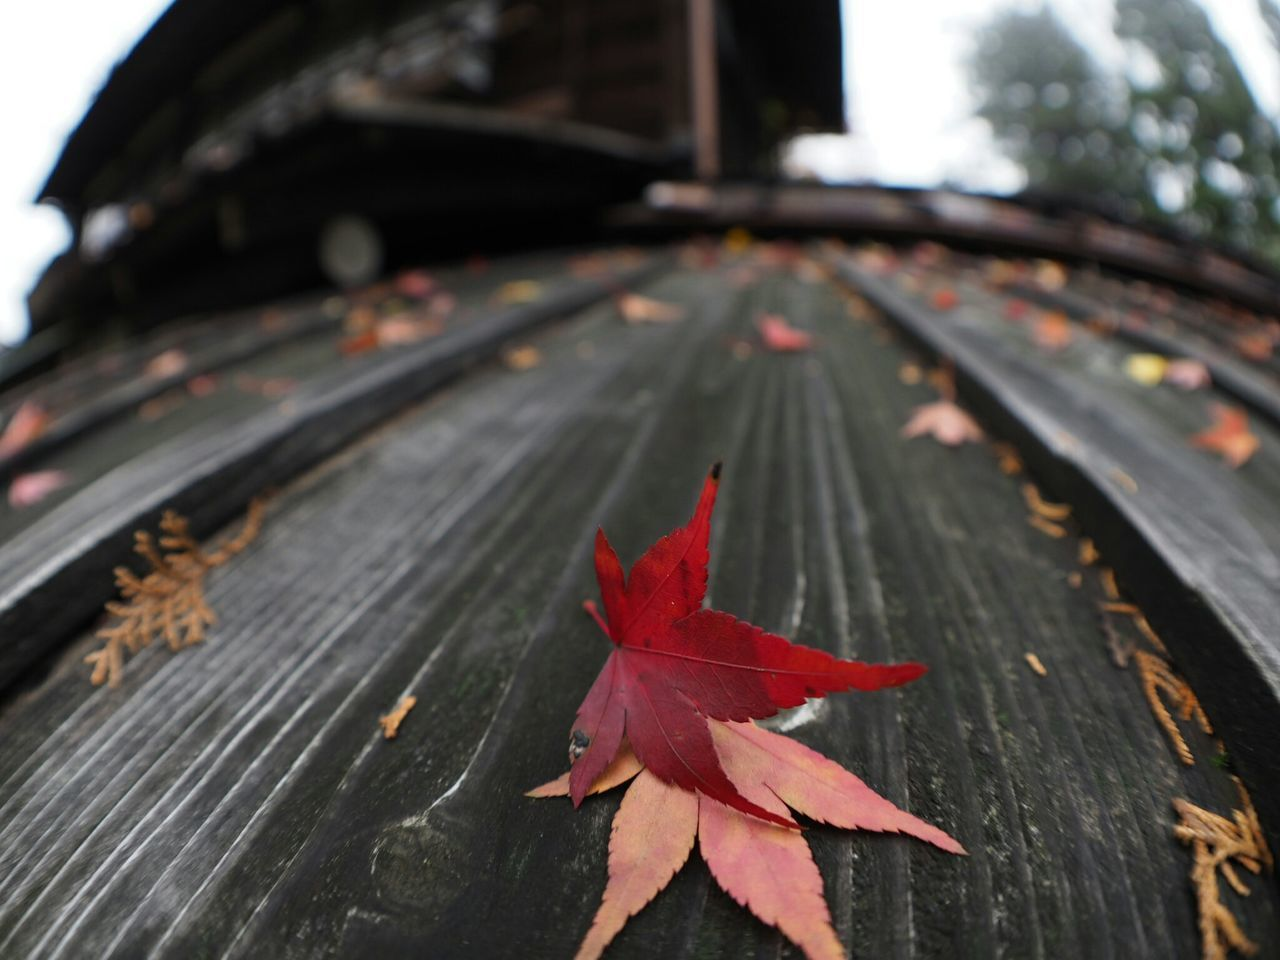 EyeEm Nature Lover From My Point Of View Nature Photography Olympus Om-d E-m10 Japan Photography Relaxing Autumn Taking Photos Autumn Leaves On The Roof The Colors Of Autmn View Old House Walking Around Check This Out